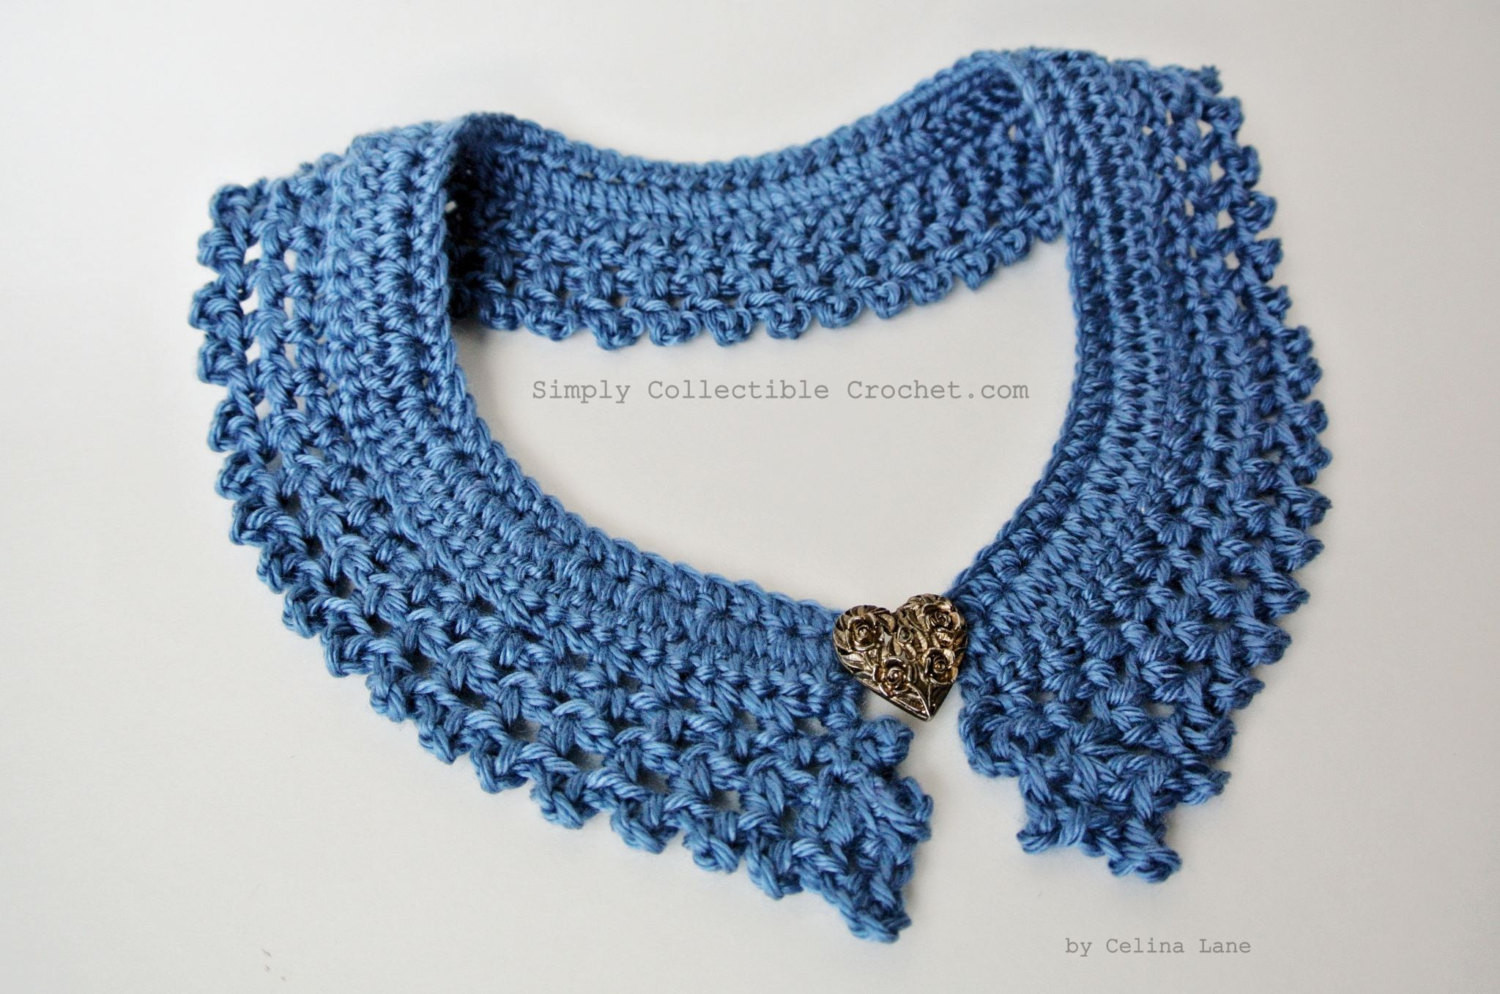 Crochet Collar Pattern Lovely Crochet Pattern Collar Tutorial and Diagram Included Of Top 40 Pics Crochet Collar Pattern